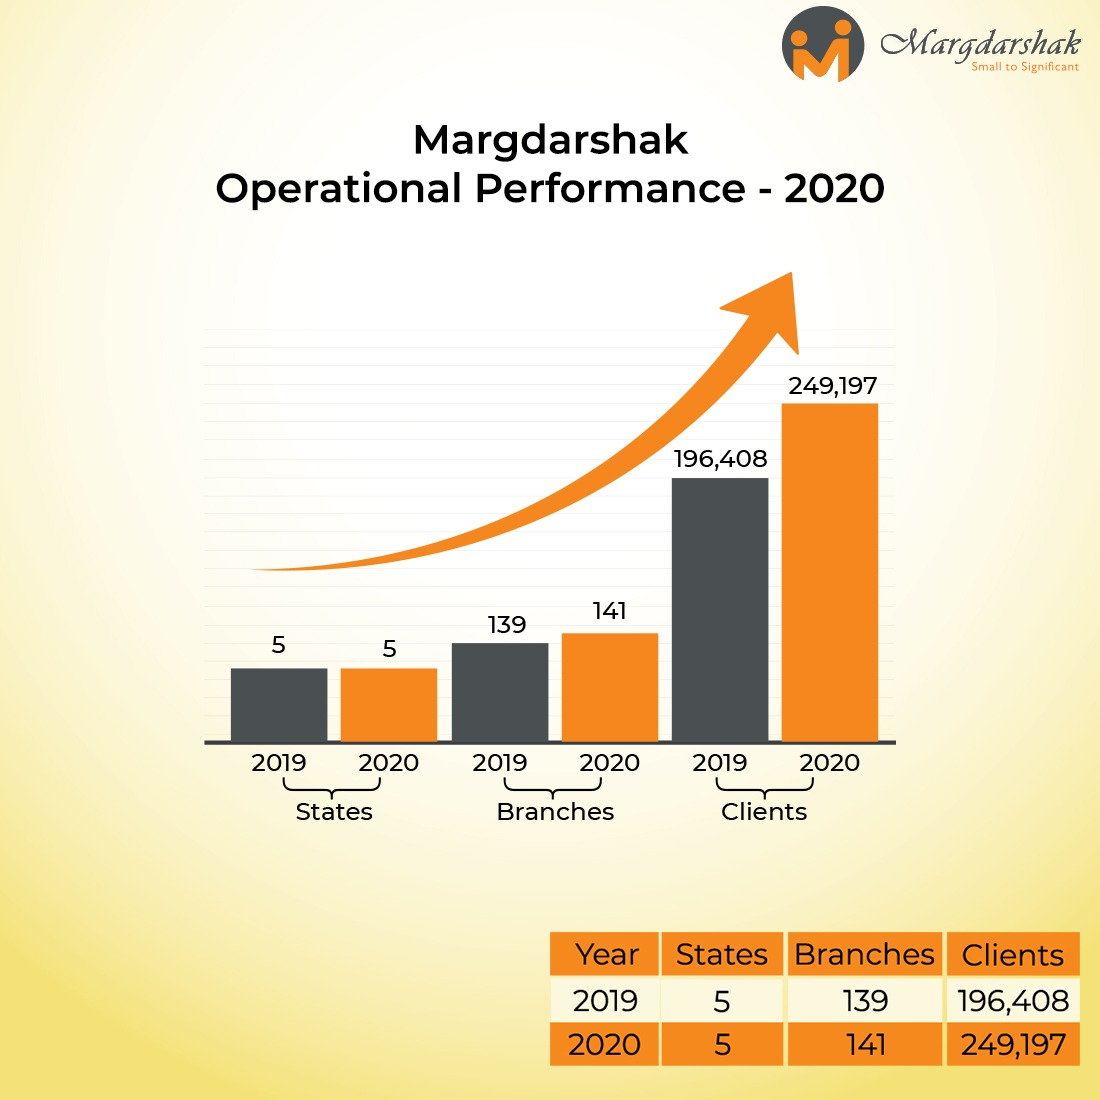 During the Year 2020, Margdarshak has served 2.49 lac women clients through a network of 141 branches across five states. #margdarshakgrowth #operationalexcellence #growth #clients #Financialinclusion #microfinance